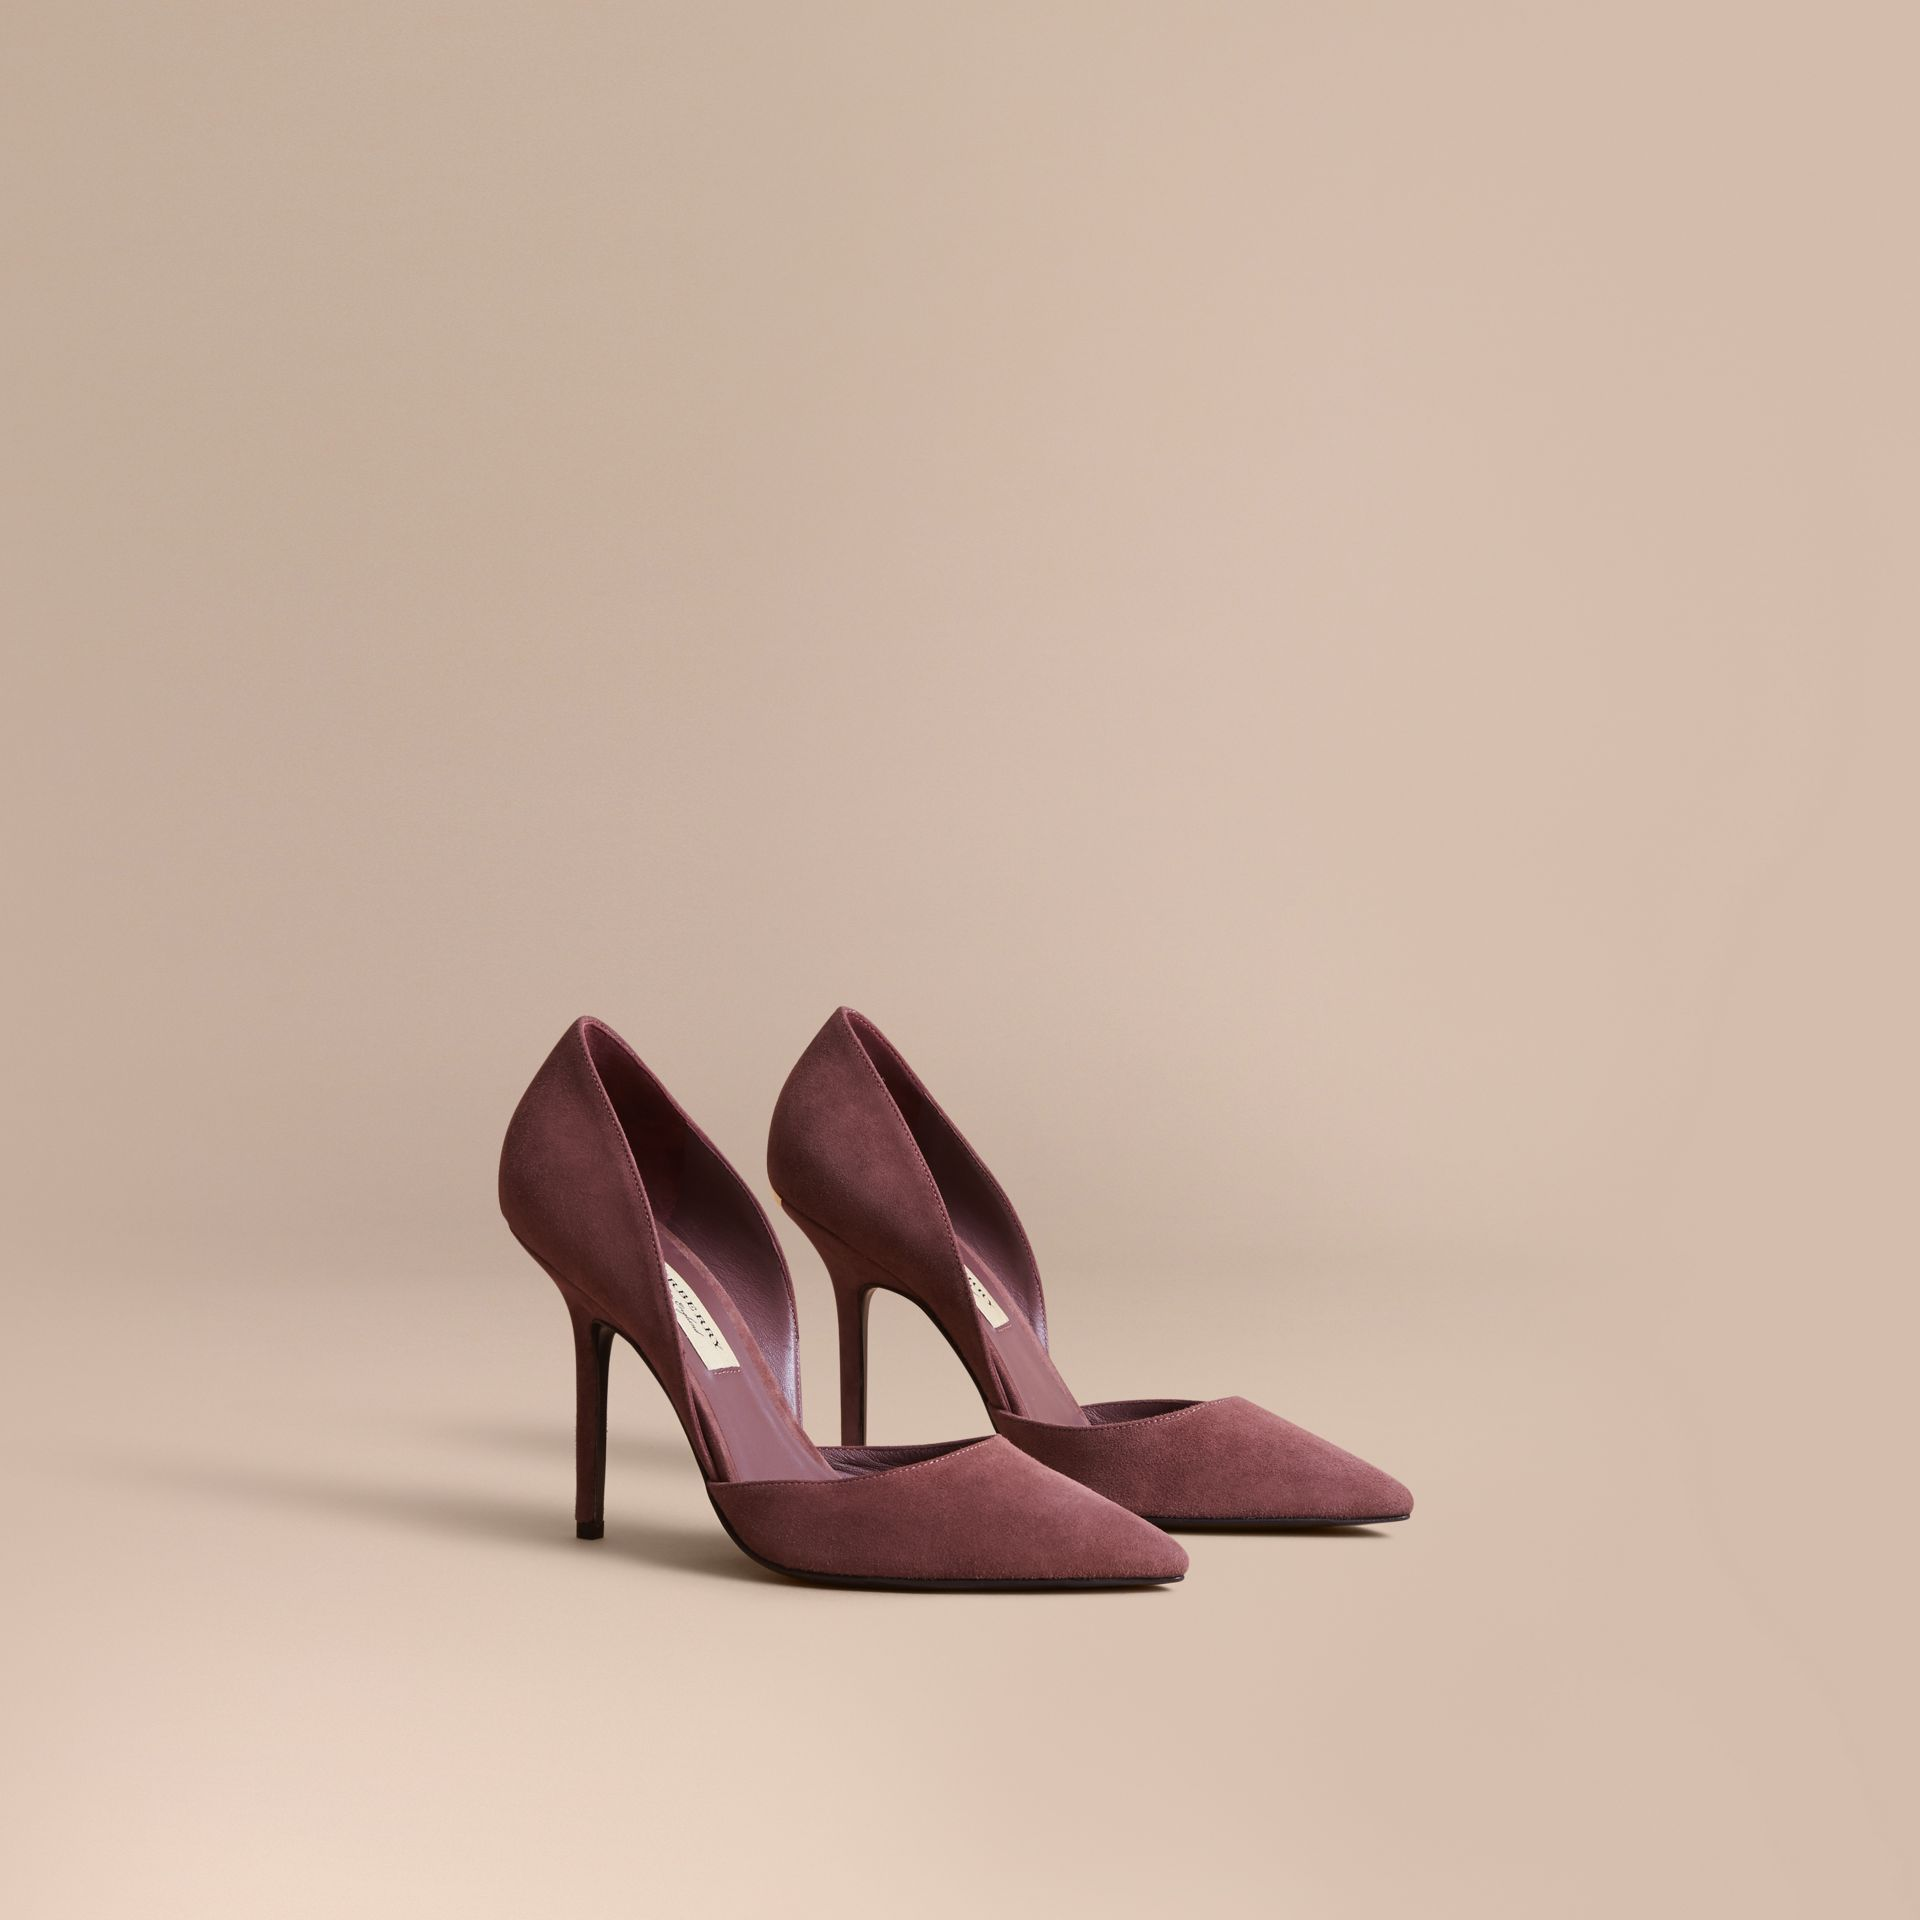 Point-toe Suede D'Orsay Pumps in Taupe Rose - Women | Burberry - gallery image 1